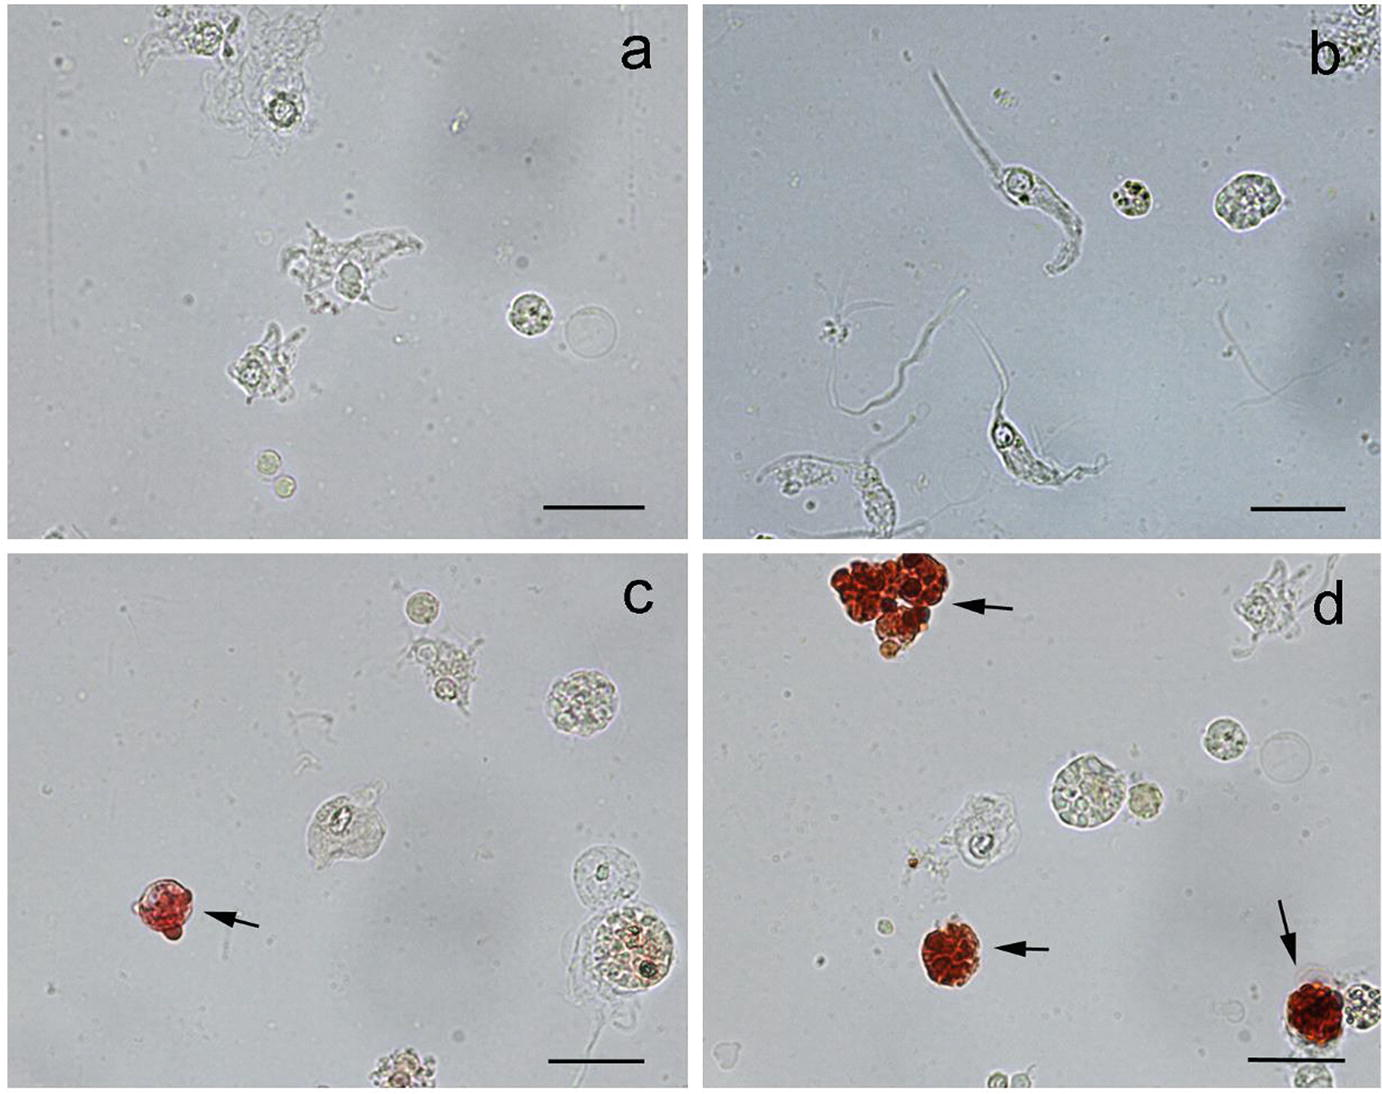 Echinodermata: The Complex Immune System in Echinoderms | SpringerLink